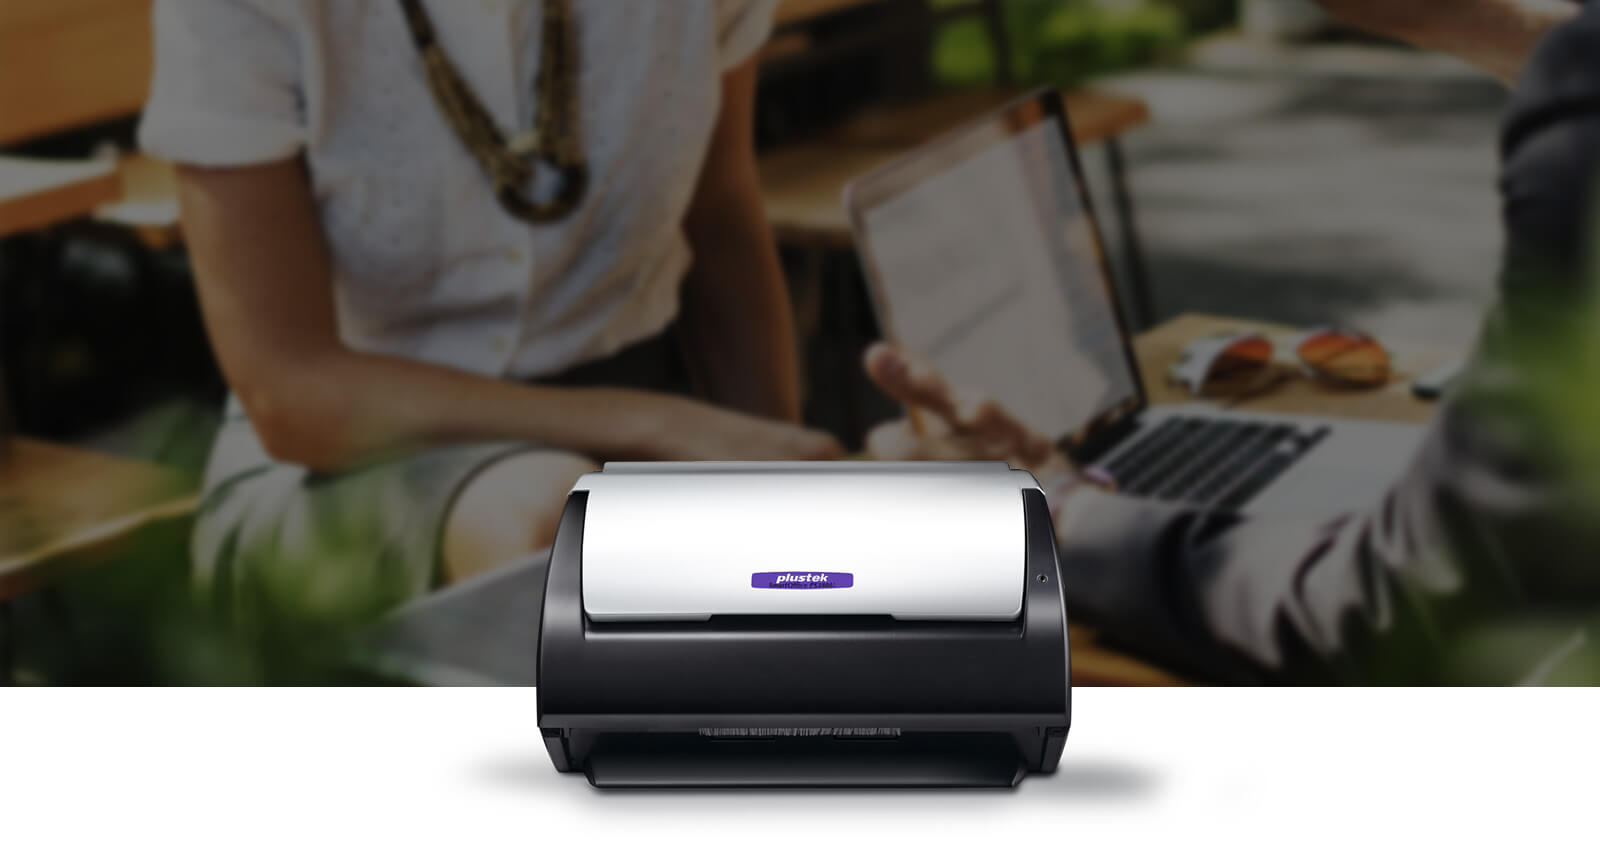 simple and compact design, you can move the scanner to anywhere without hestitate